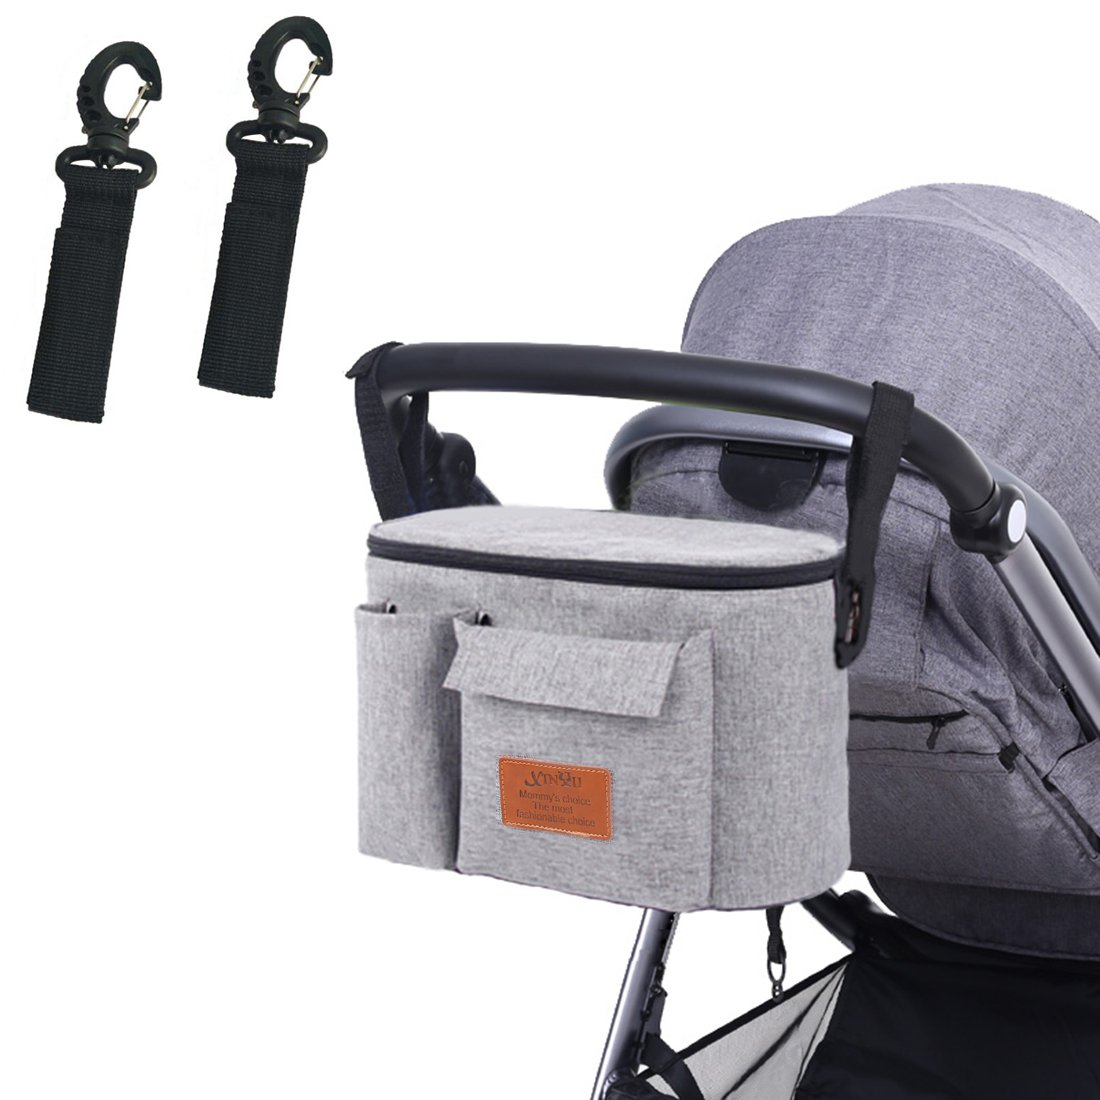 Stroller Organizer Universal Fit for All Strollers with Cup Holders and Hook Clips